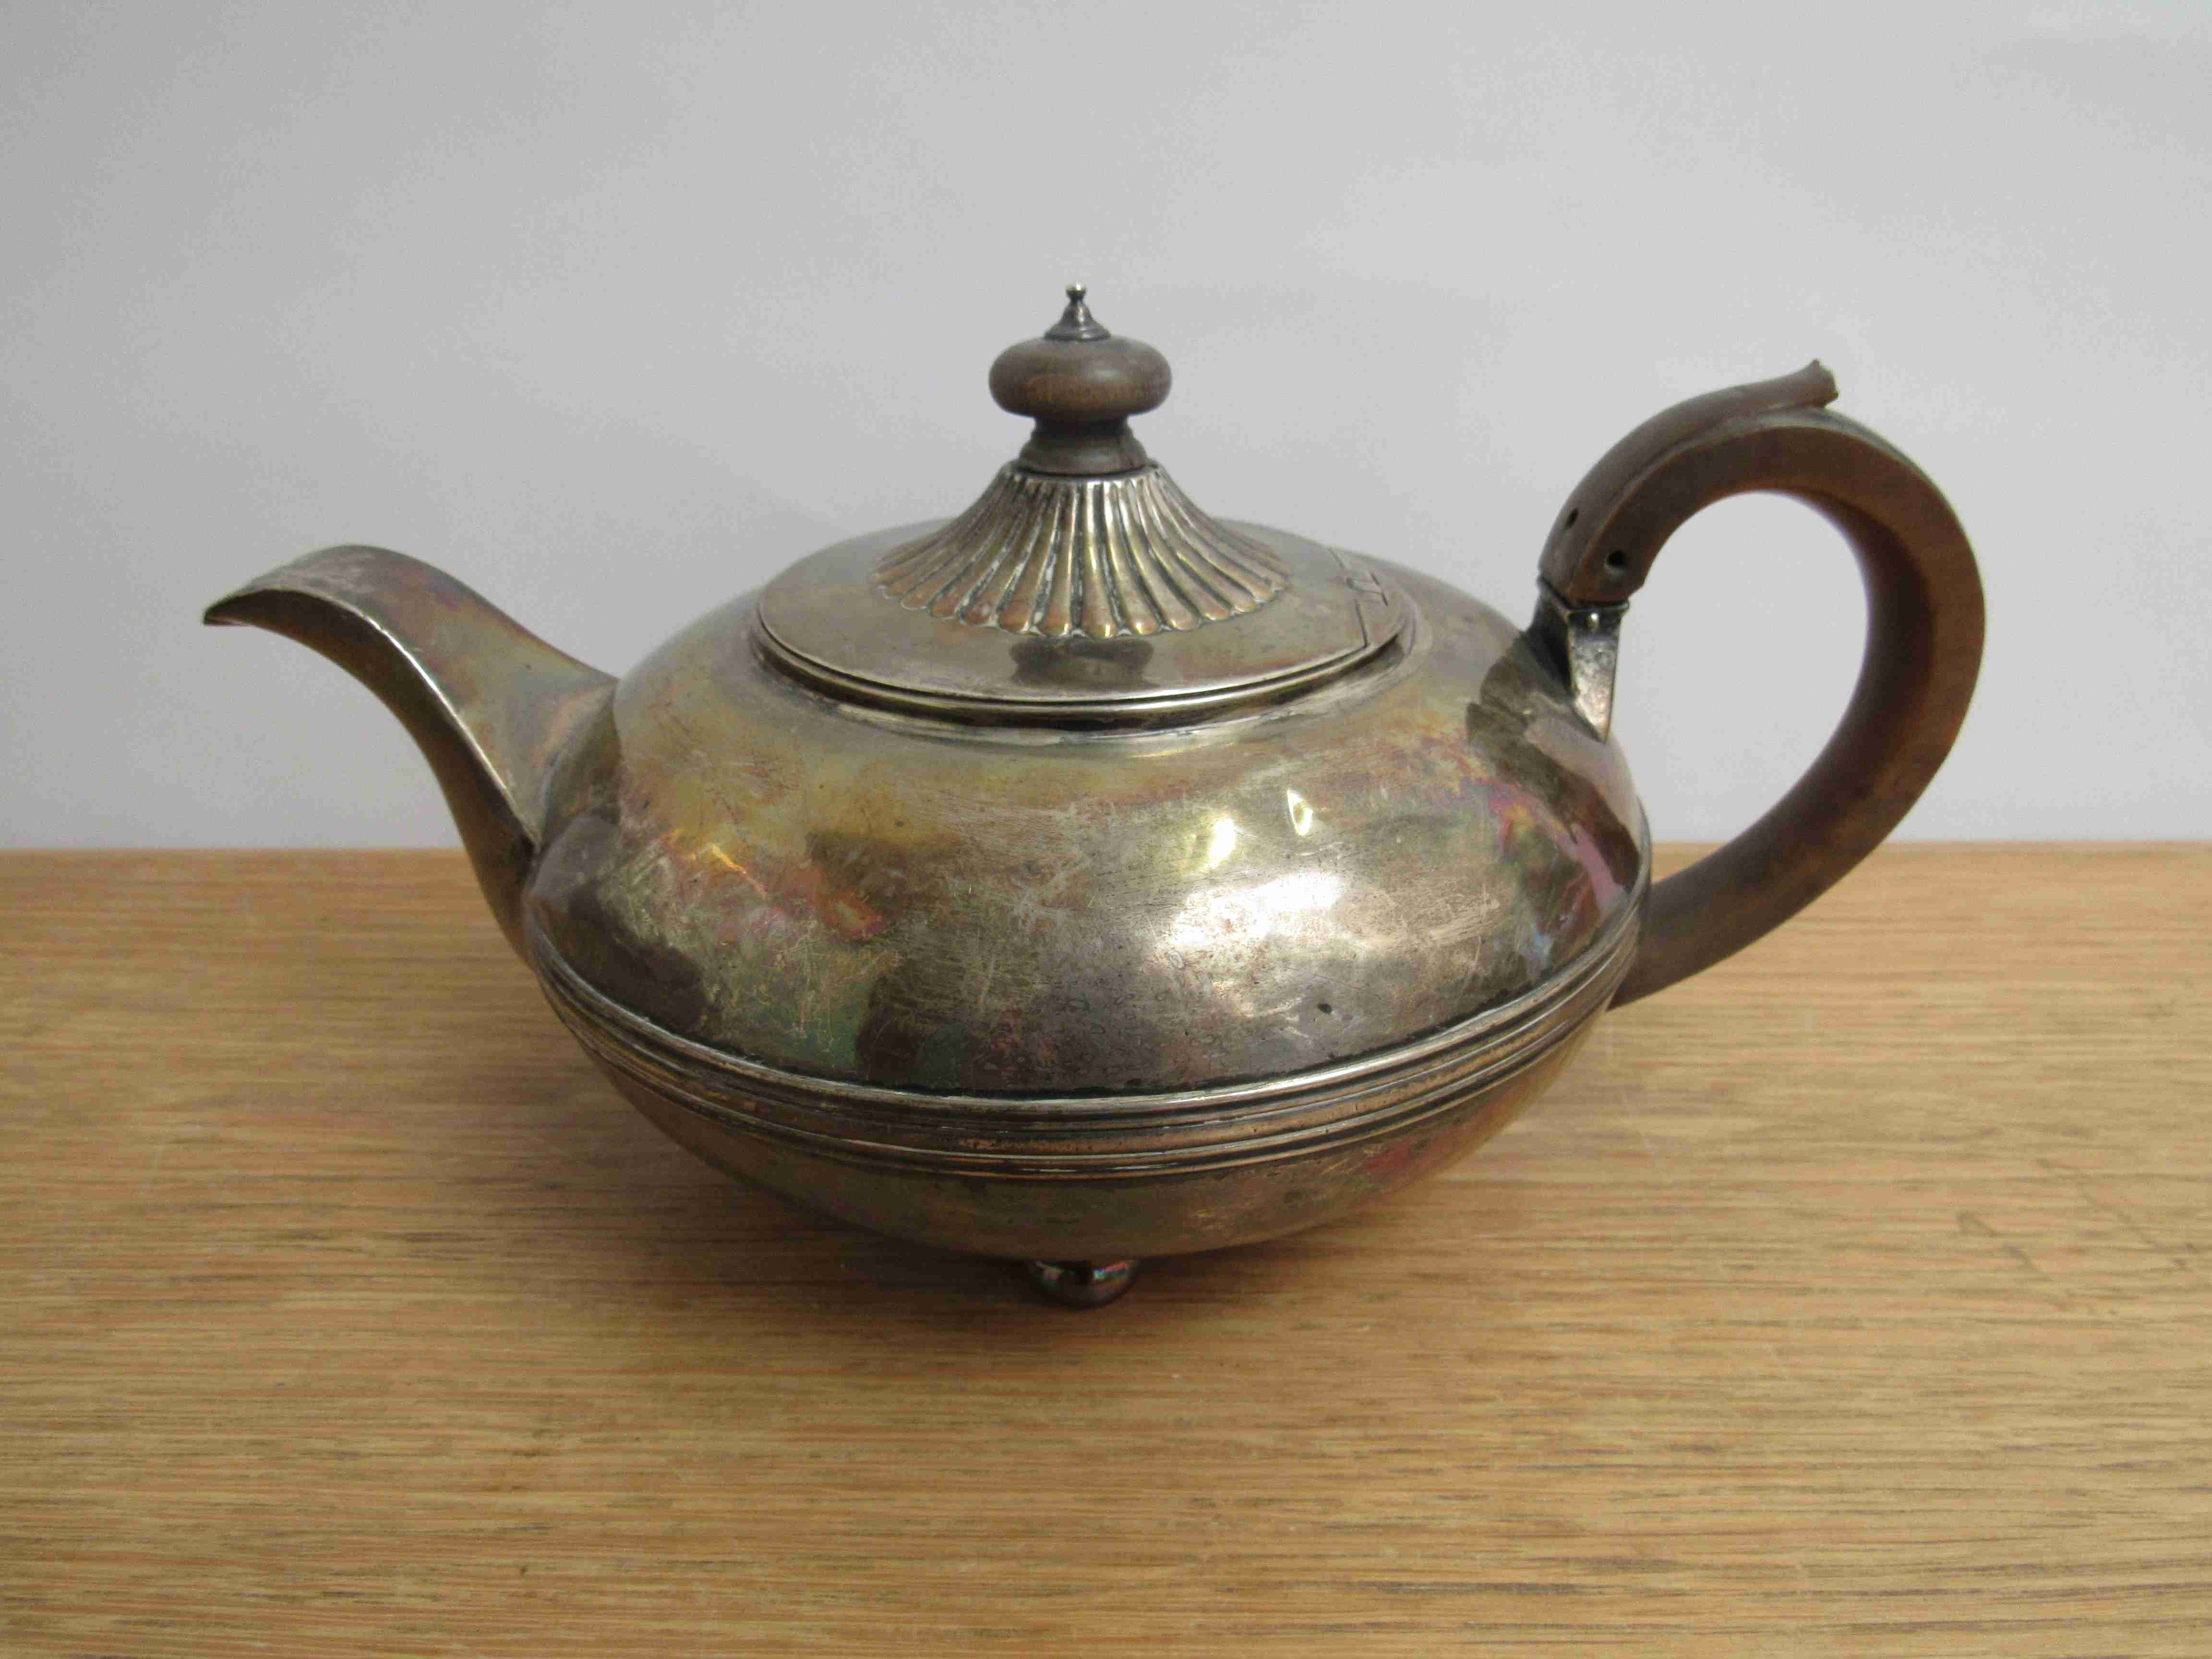 Lot 13 - A Georgian silver teapot with treen finial and handle marks rubbed, dented,